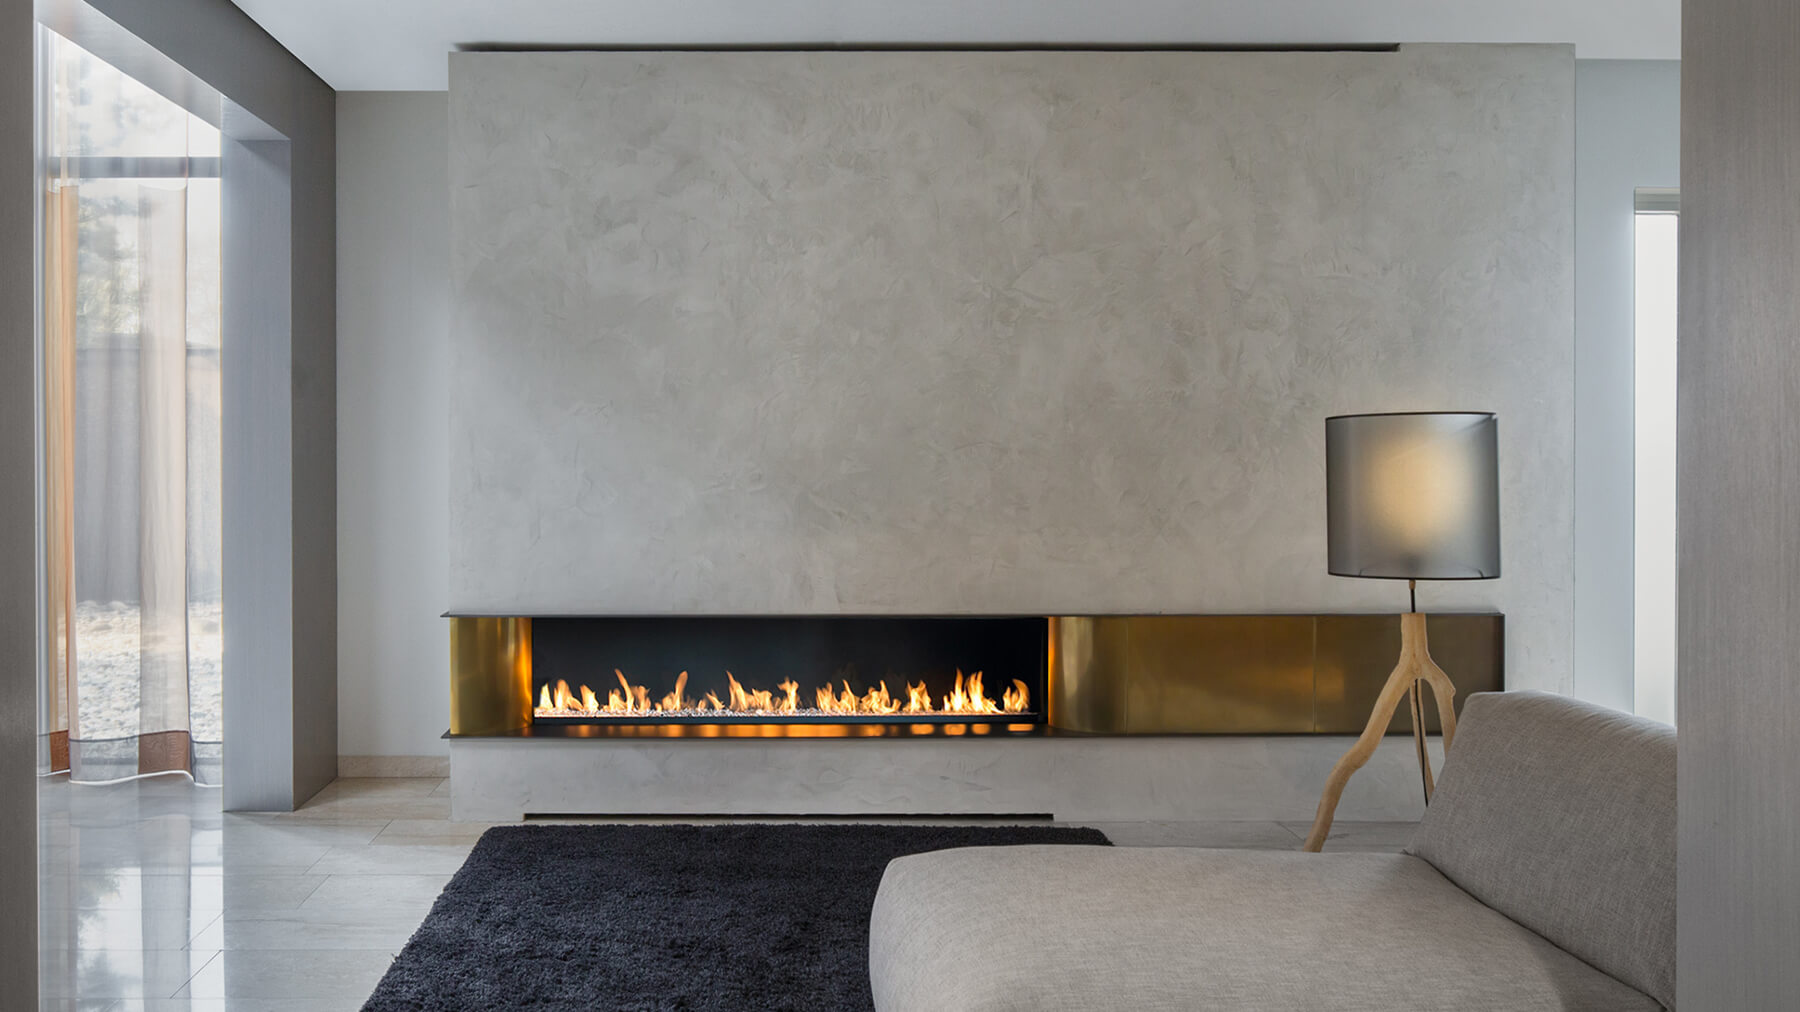 Modern Fireplace6 Modern Fireplaces Gas With Minimalist Design ...